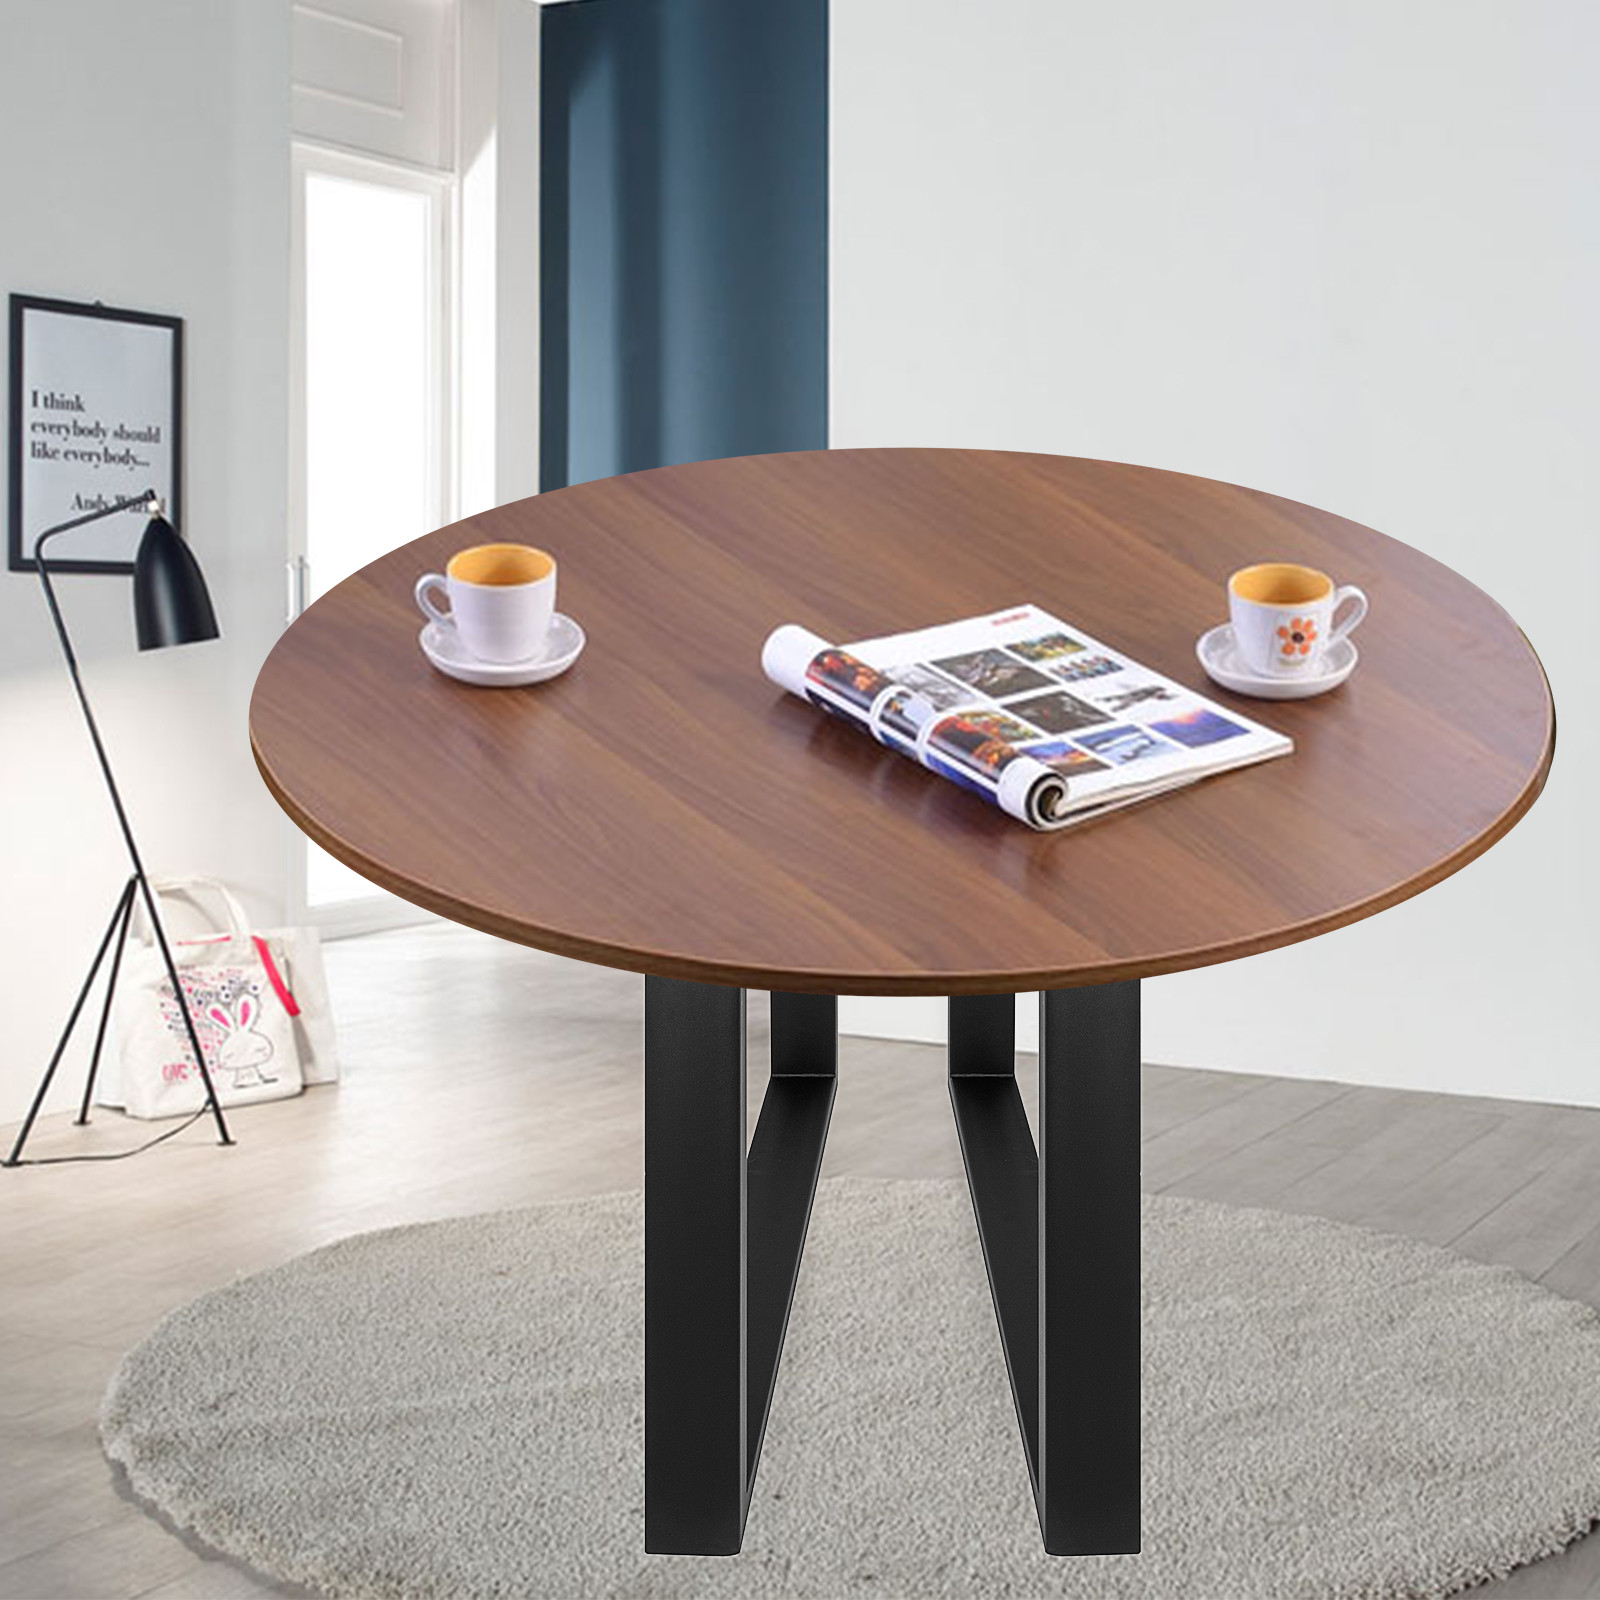 2X-Table-Legs-Black-Dining-Table-Leg-Heavy-Duty-Computer-Desk-Legs-Rectangle thumbnail 82